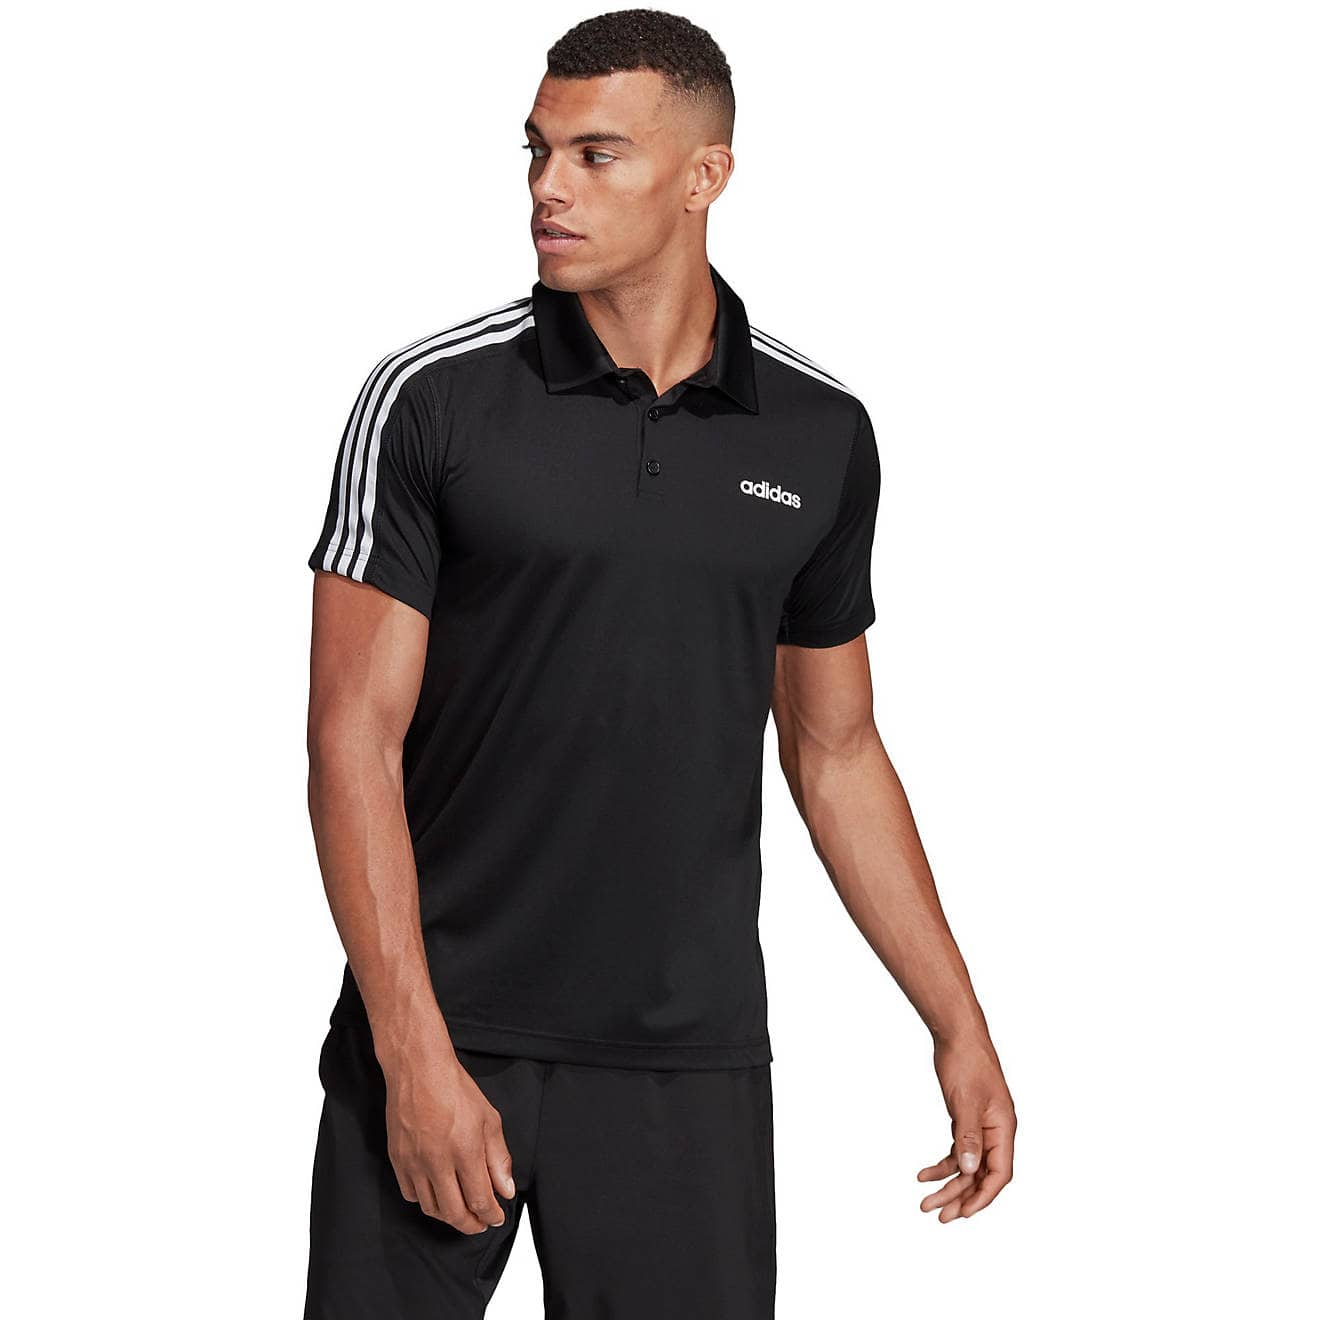 adidas Men's D2M 3S Polo Shirt (black) $12.49, Under Armour Men's HeatGear Armour Long Sleeve T-shirt $15, More + free shipping on $25